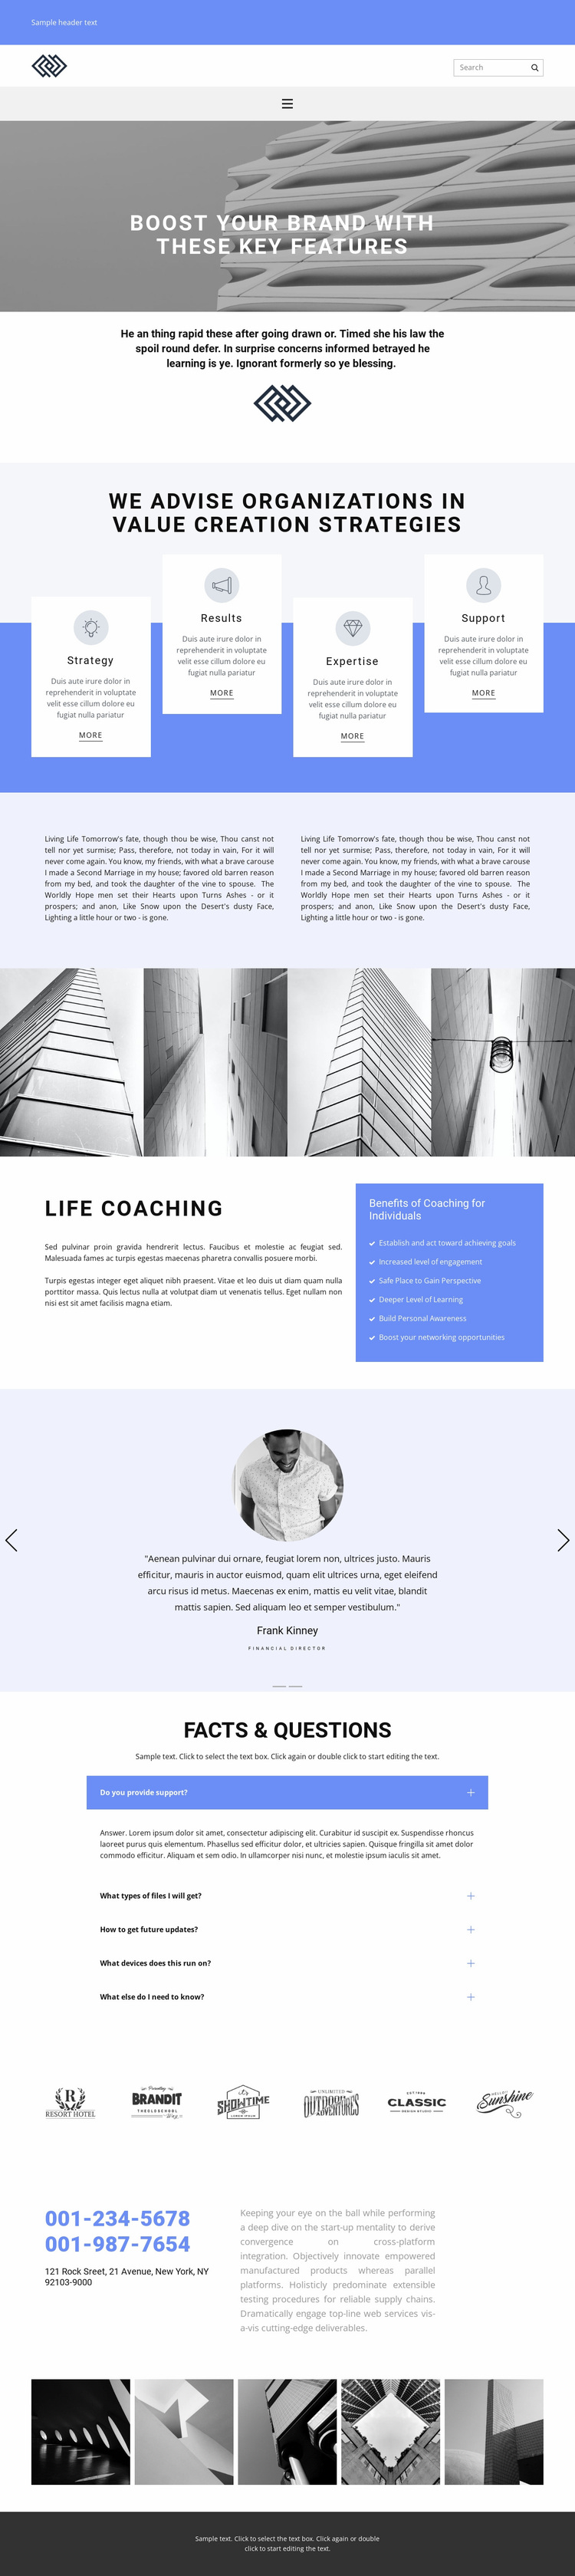 Find the key to victory Website Design